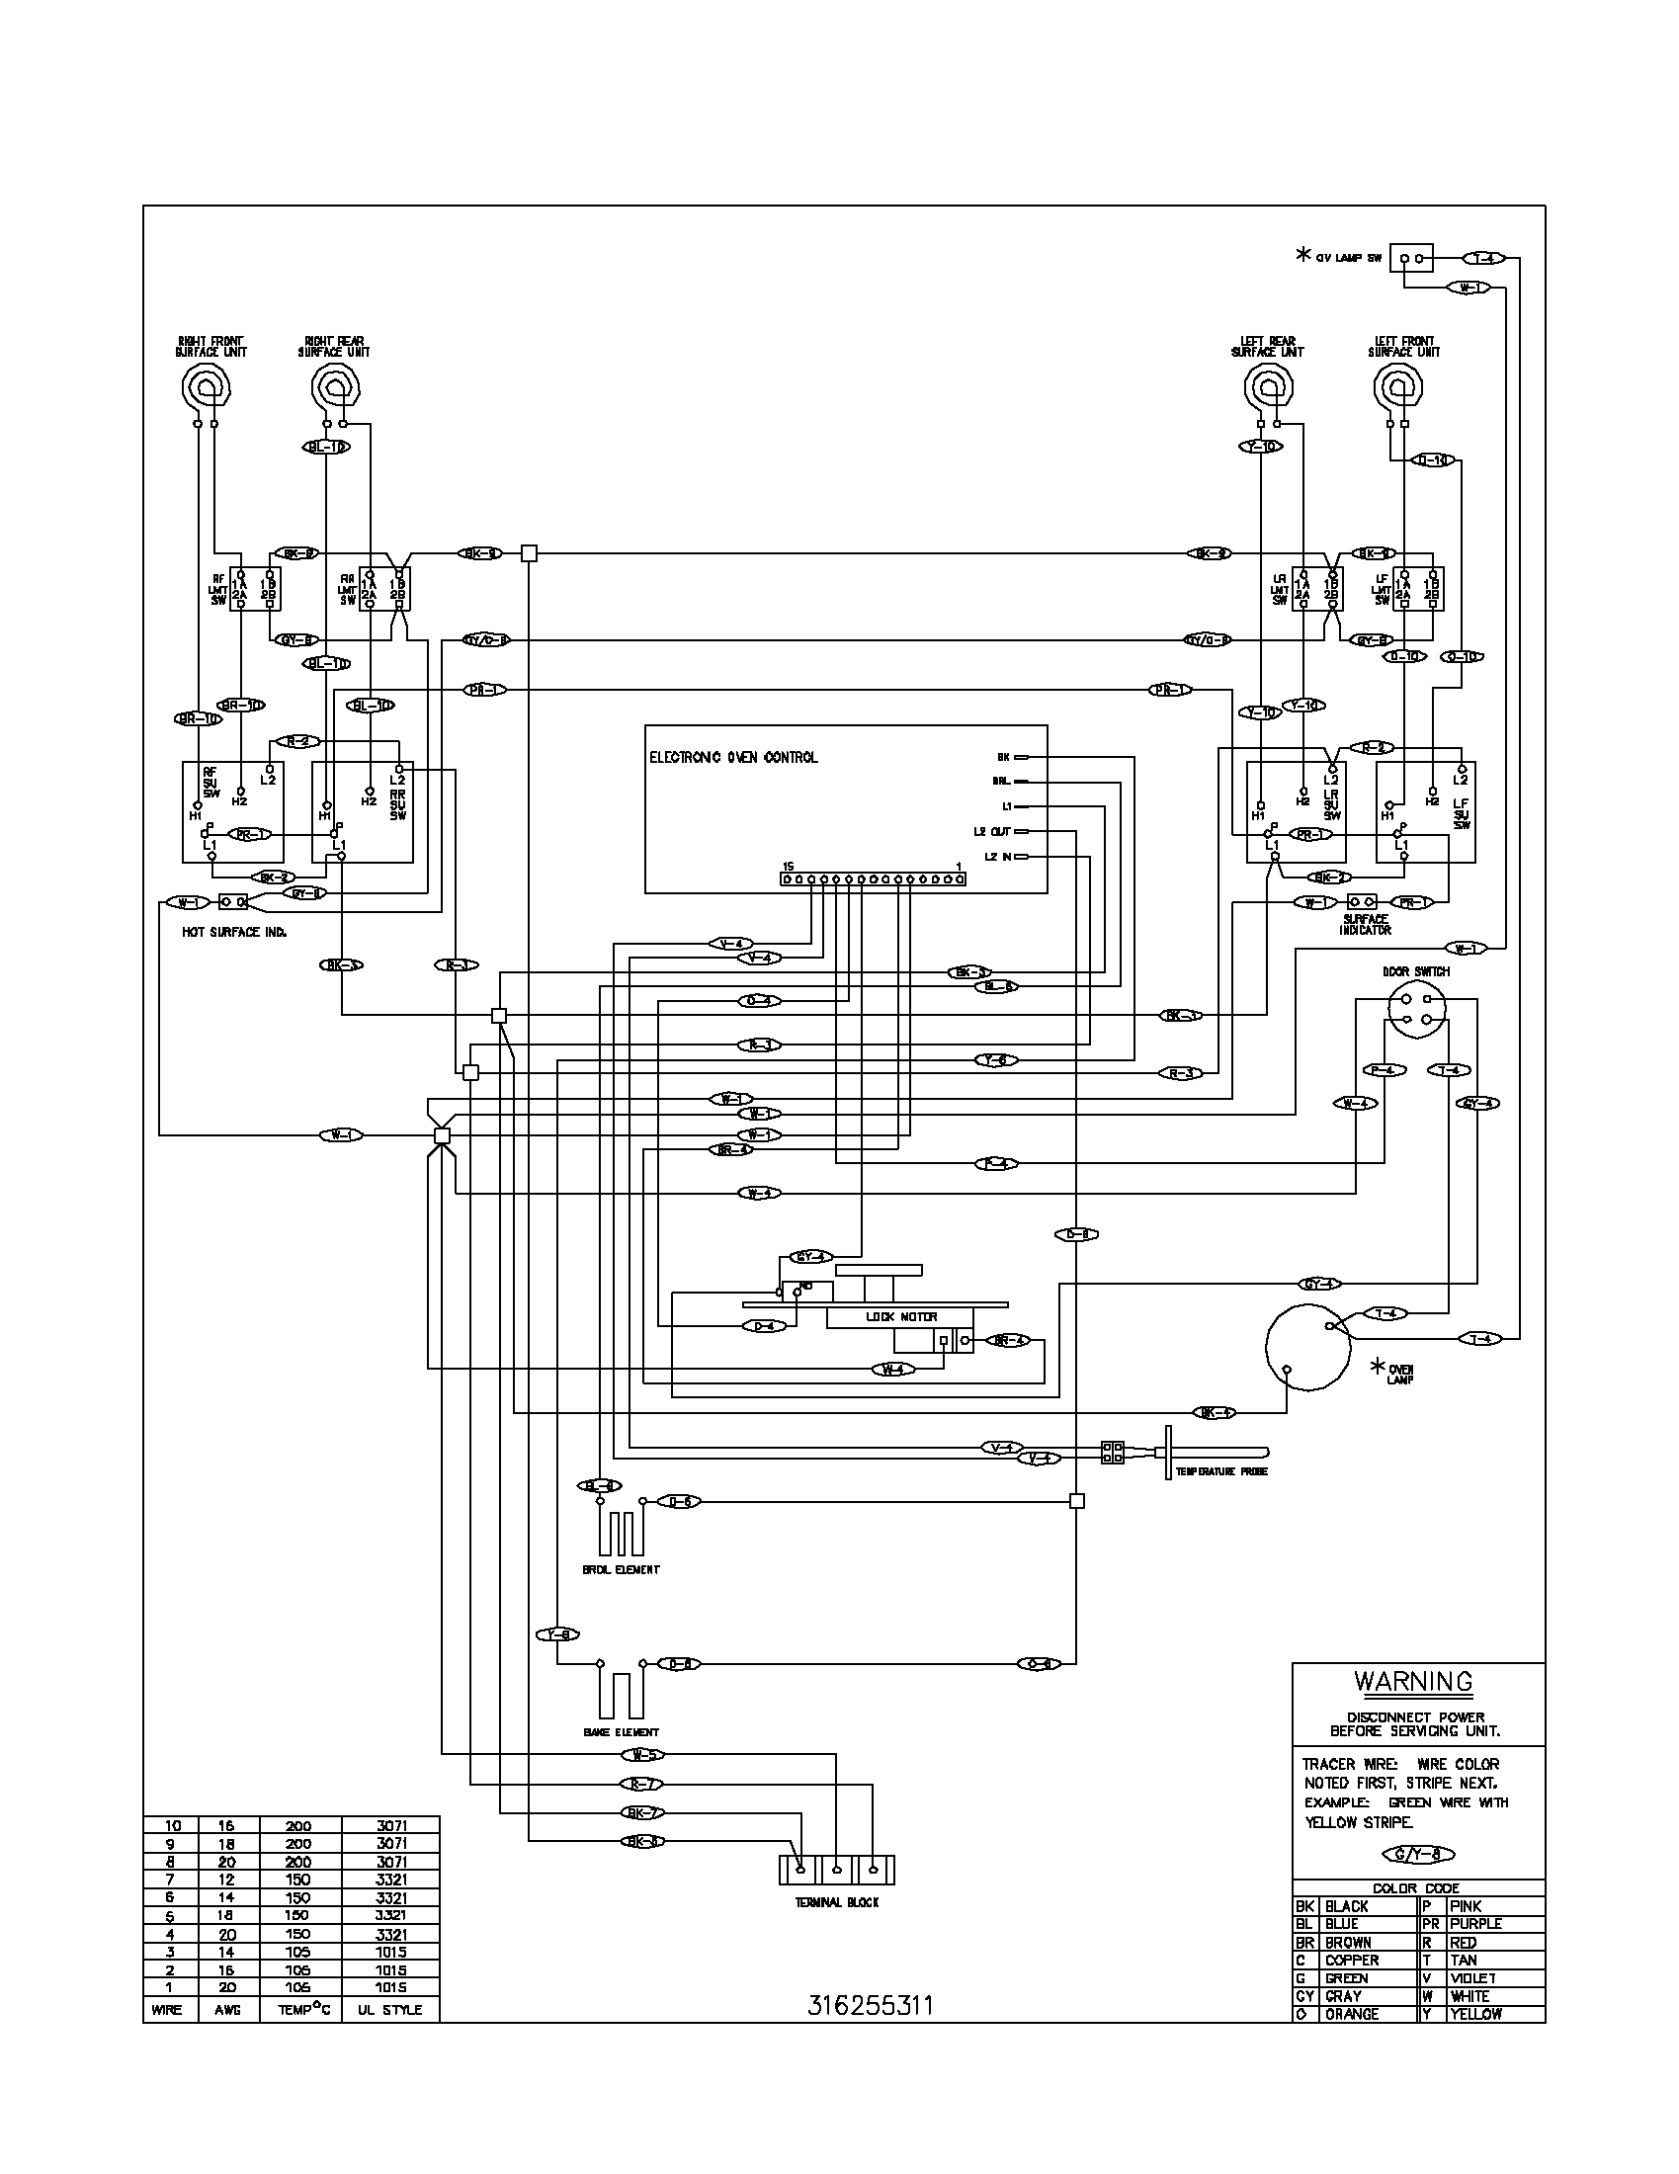 electric stove wiring diagram wiring diagram of electric stove wiring image stove wiring diagram wiring diagram on wiring diagram of